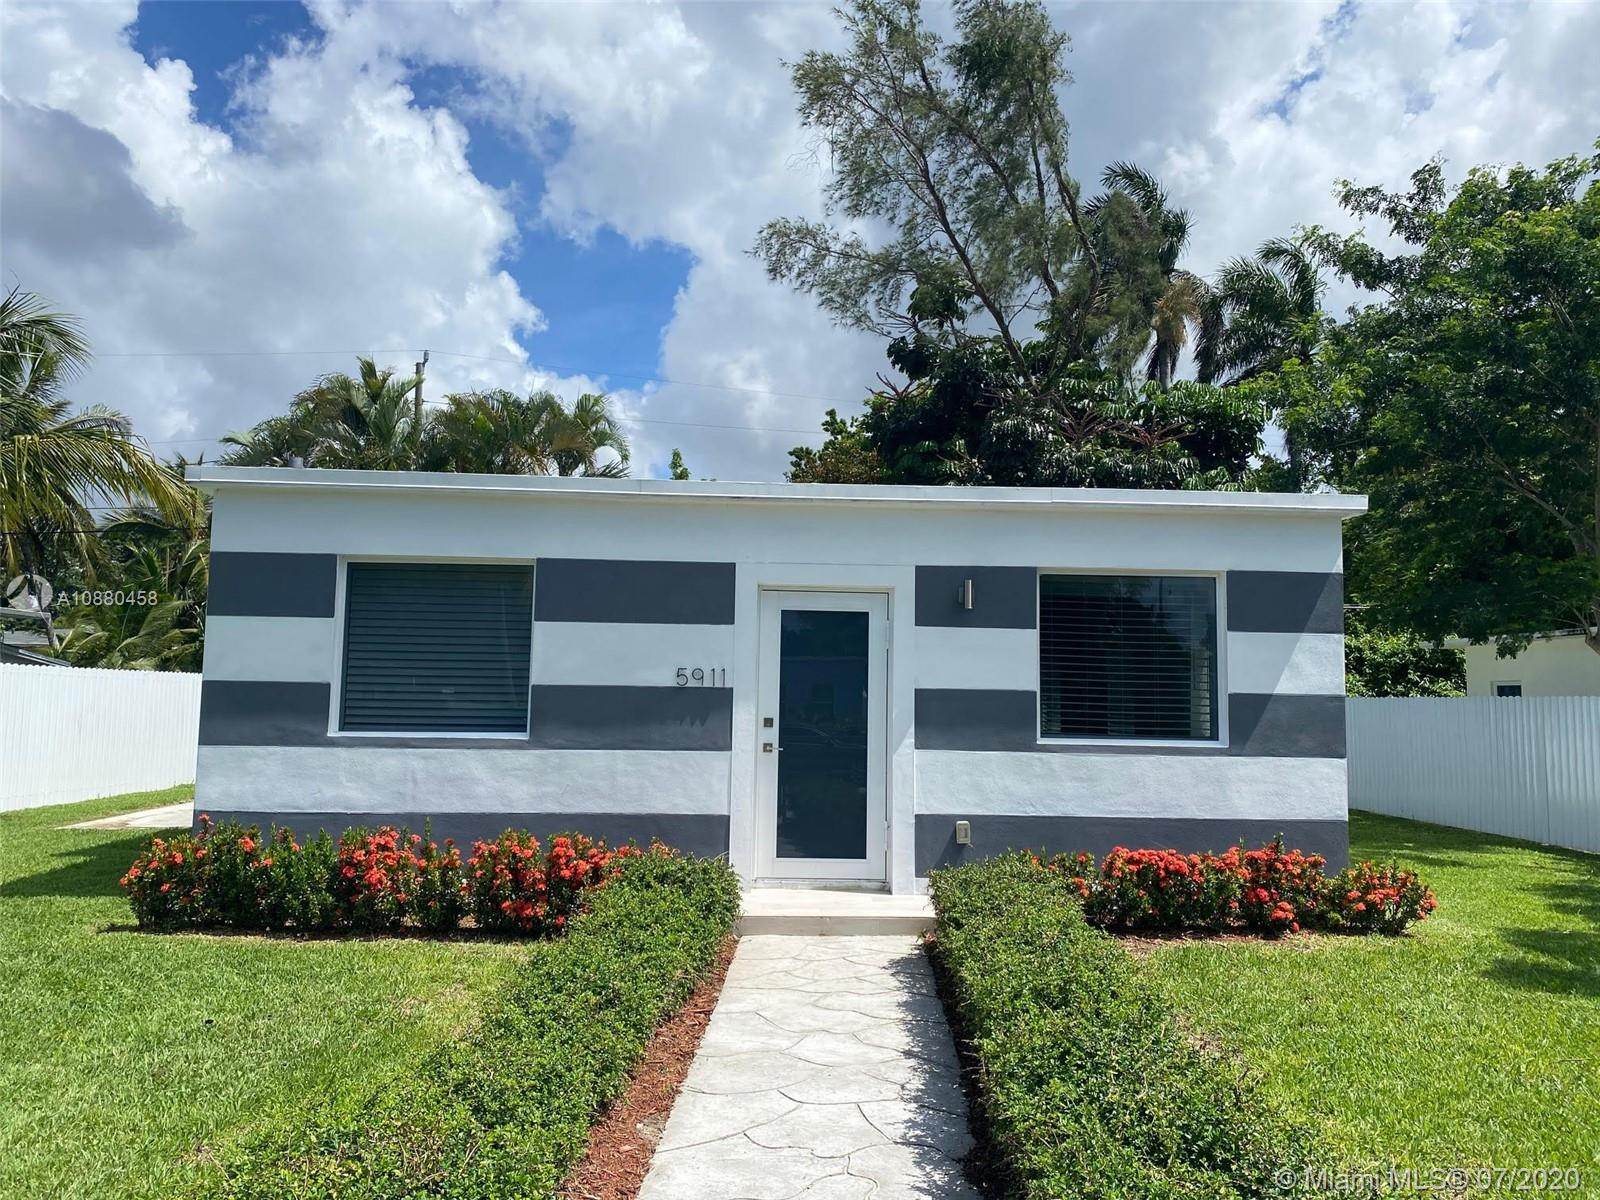 AMAZING 3 BEDS 2 BATHS HOME ON A VERY LARGE LOT!! JUST RENOVATED WITH IMPACT WINDOWS, BEAUTIFUL MODERN GREY KITCHEN CABINETS, 2 BLOCKS FROM THE UNIVERSITY OF MIAMI, WALKING DISTANCE TO HOSPITALS, SHOPPING, DINNING AND PUBLIC TRANSPORTATION.